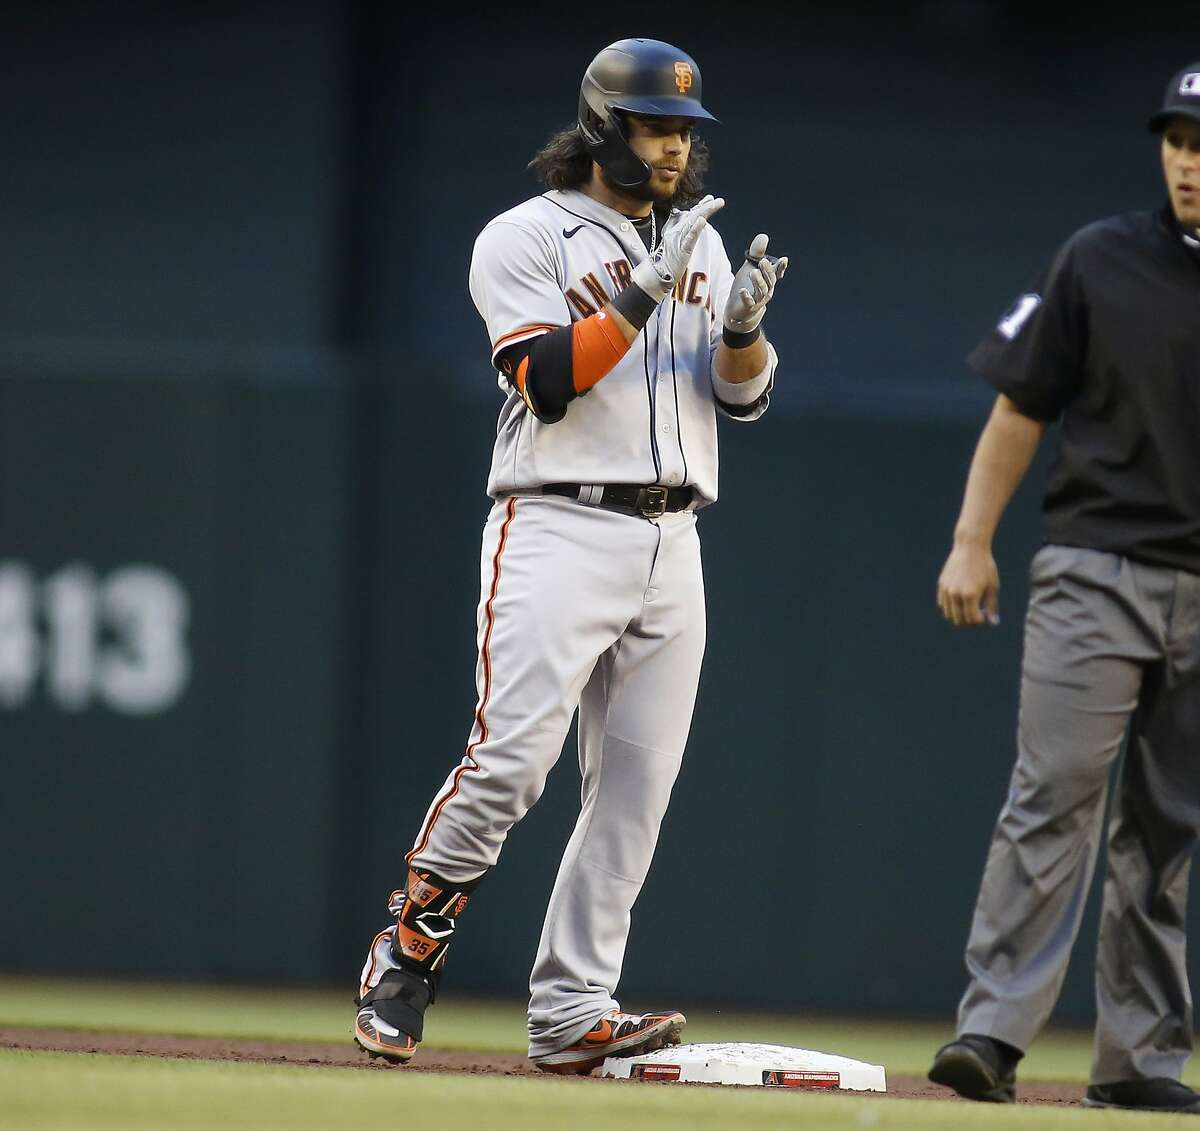 San Francisco Giants' Brandon Crawford's claps for himself after hitting a three-run double against the Arizona Diamondbacks during the first inning of a baseball game Monday, May 25, 2021, in Phoenix. (AP Photo/Darryl Webb)